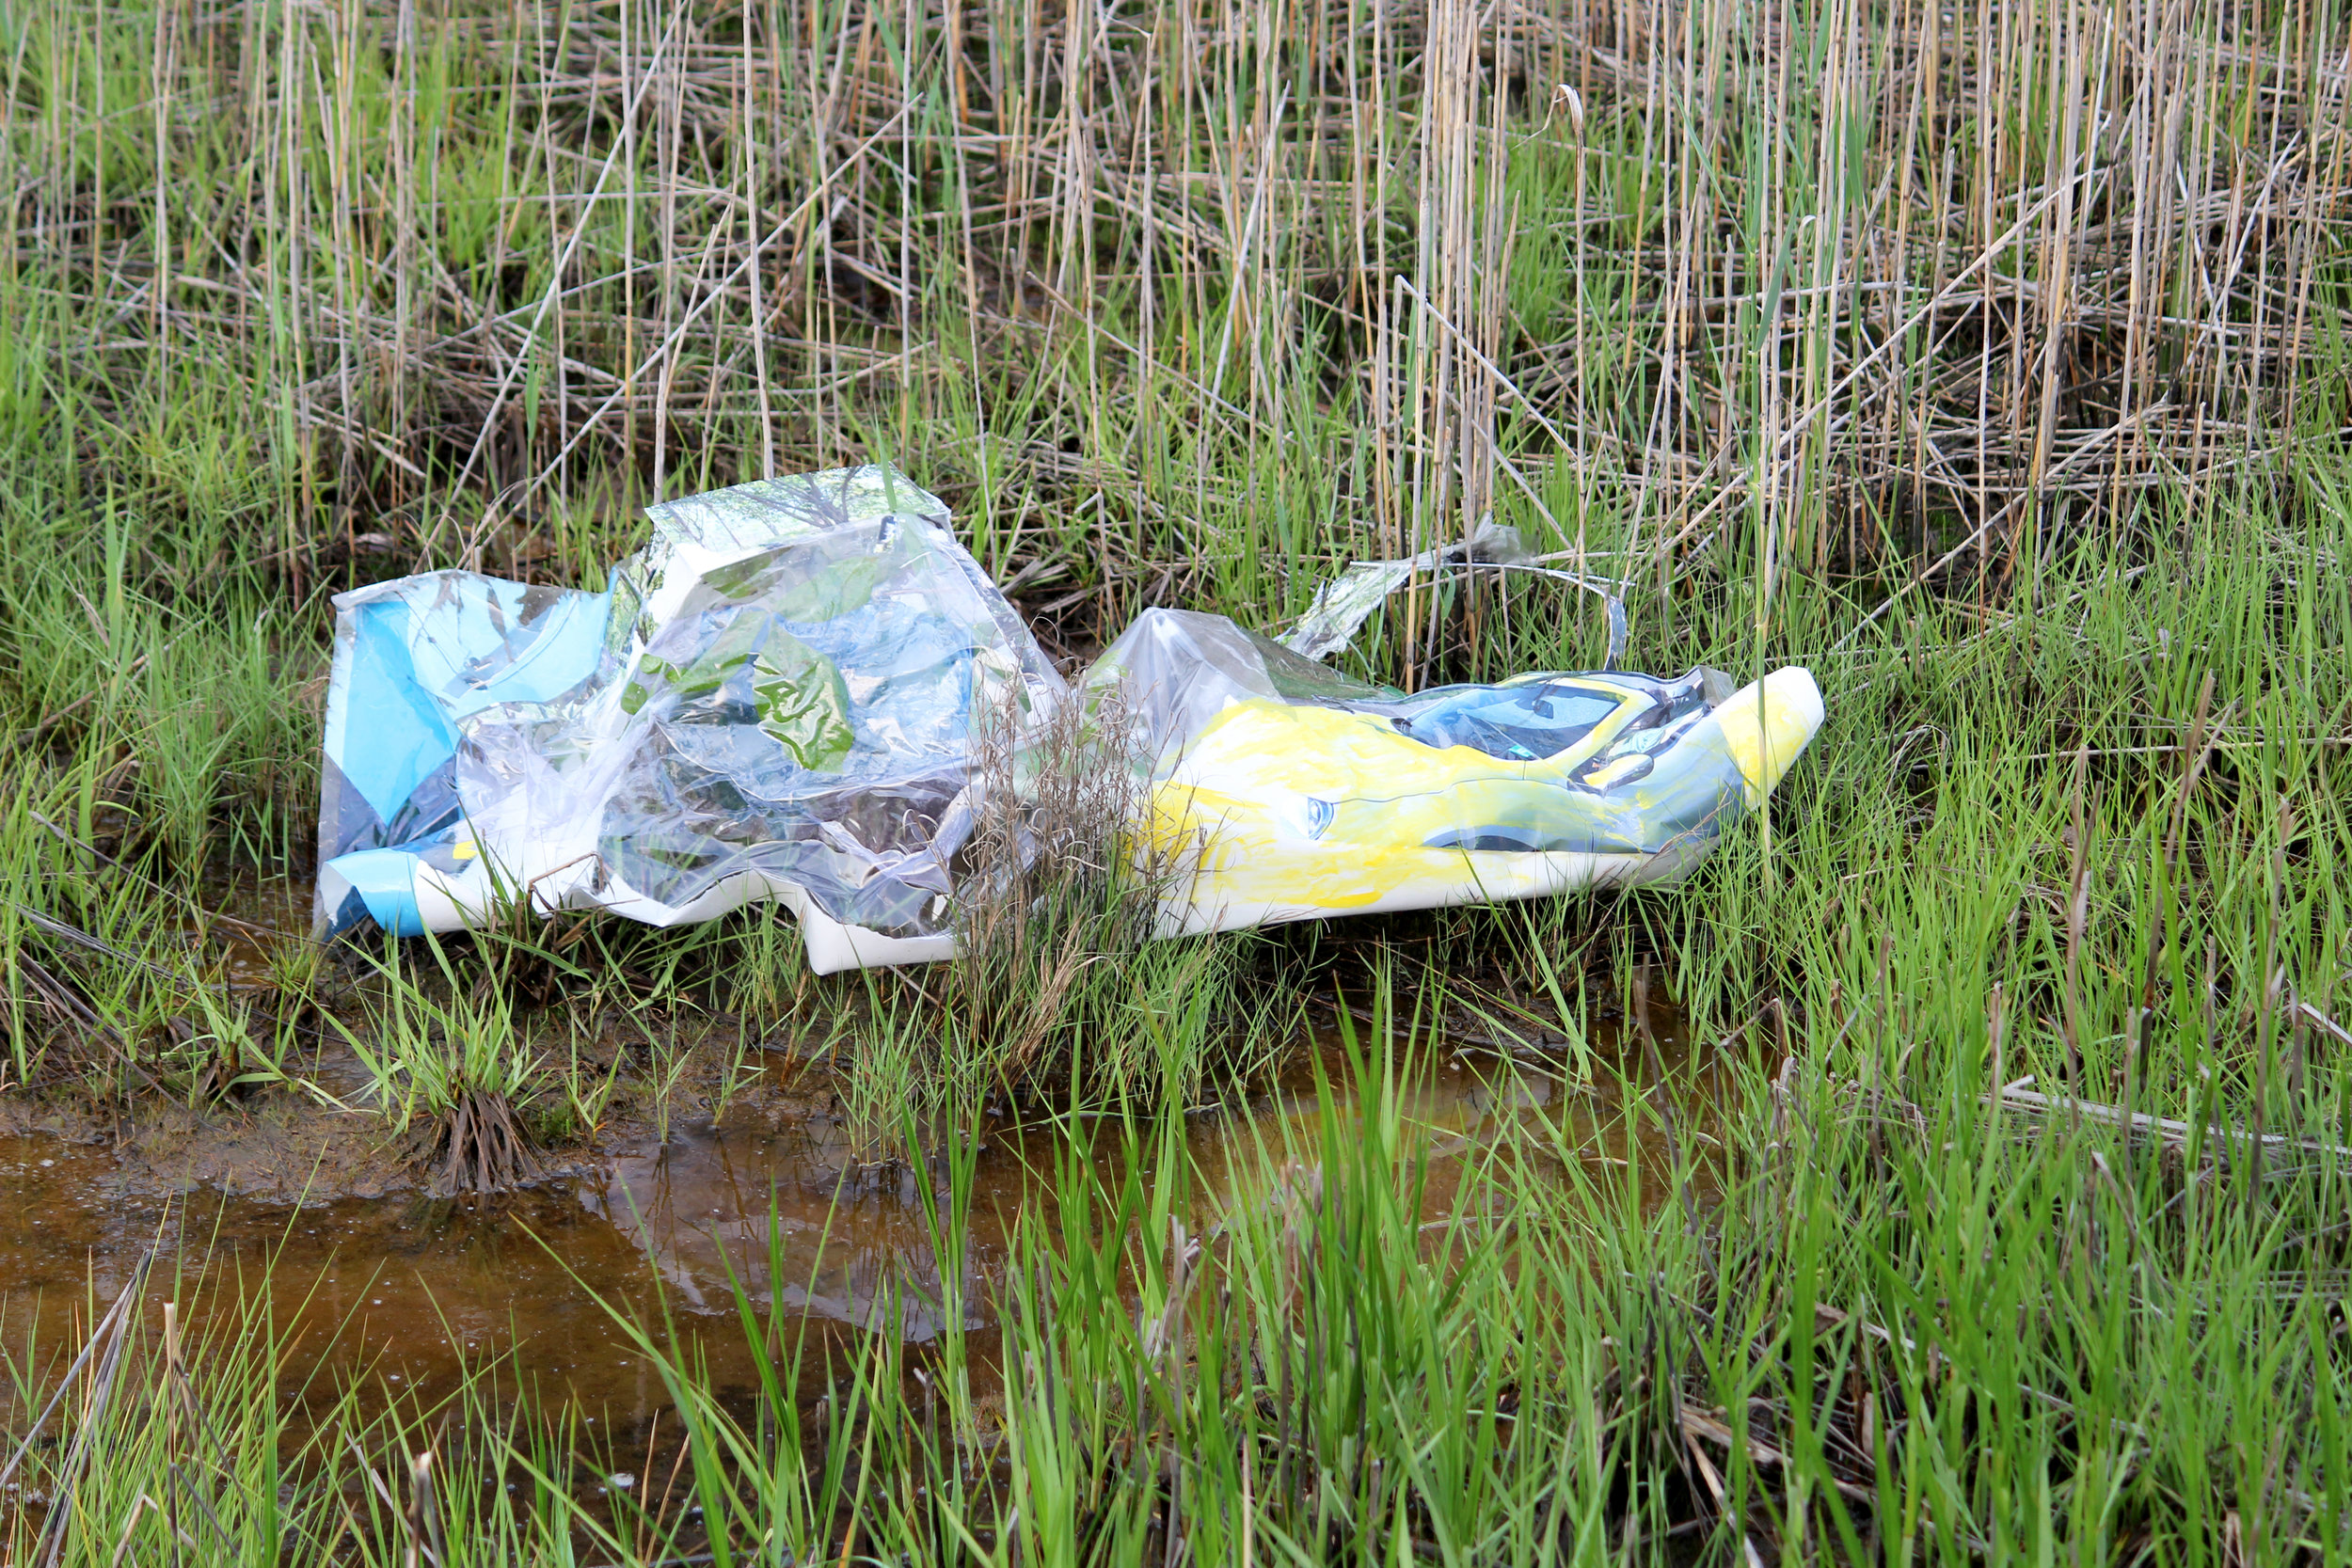 IJP,  Driving in the Sun/Garbage in the Marsh,  2018